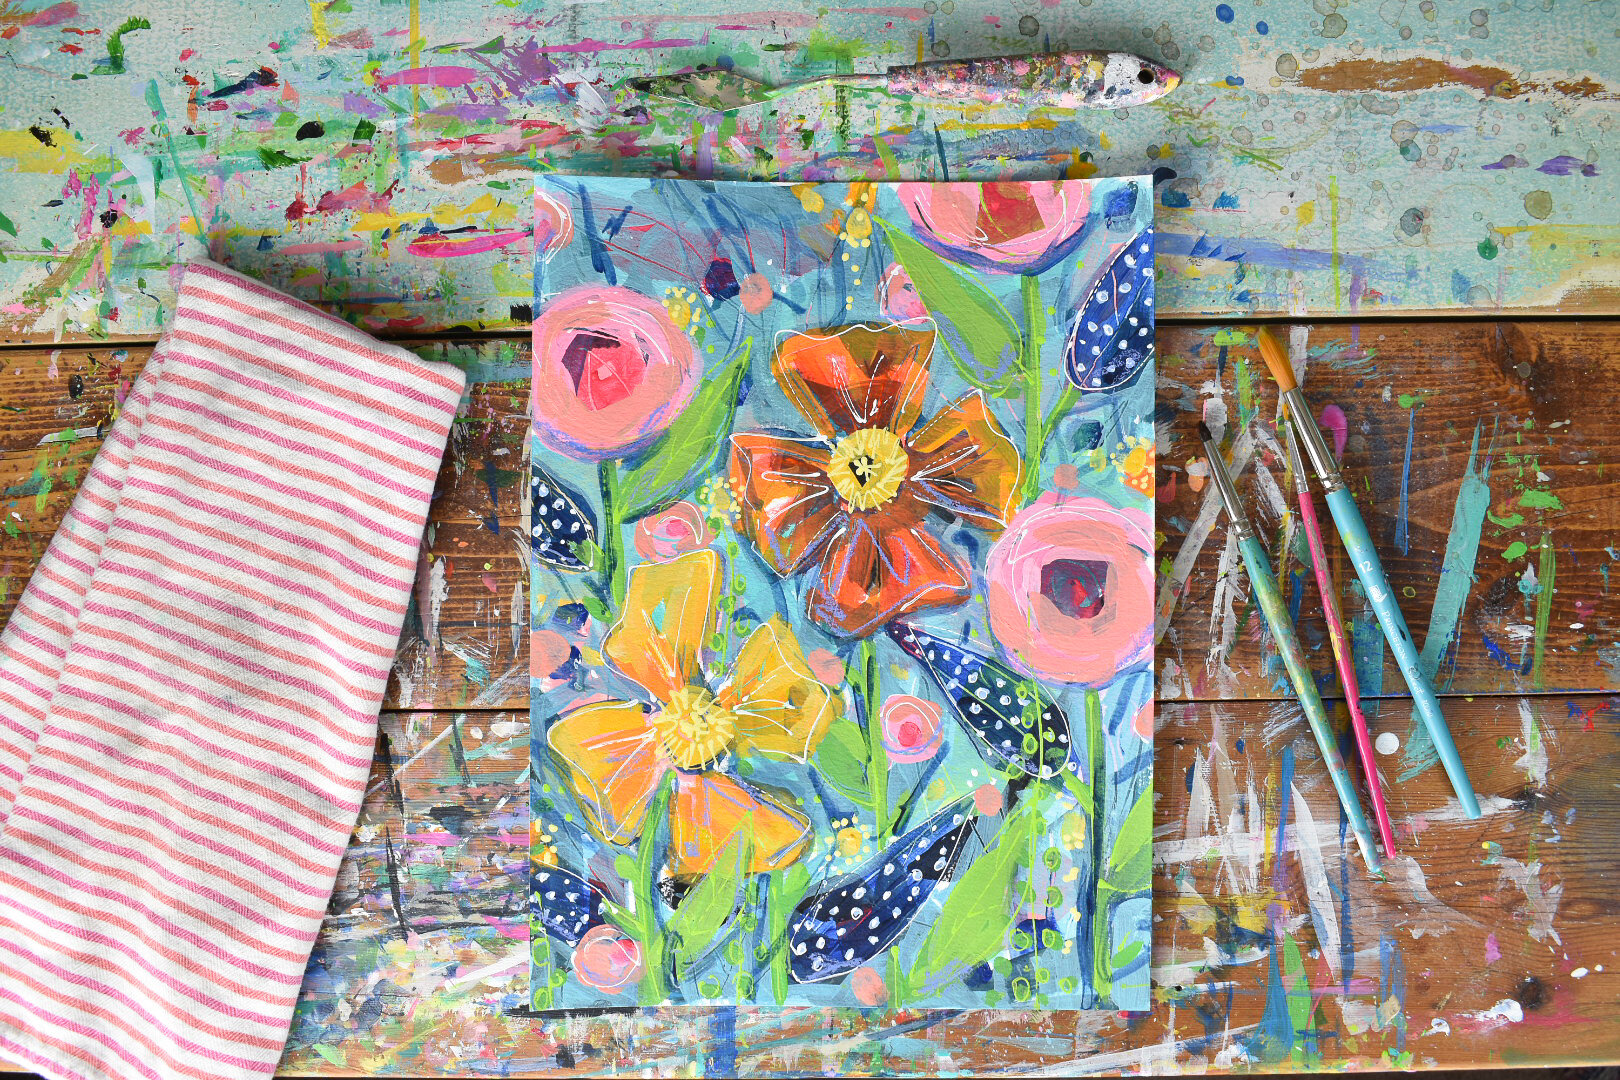 boho_flowers_abstract_daisyfaithart_painting_3.jpg